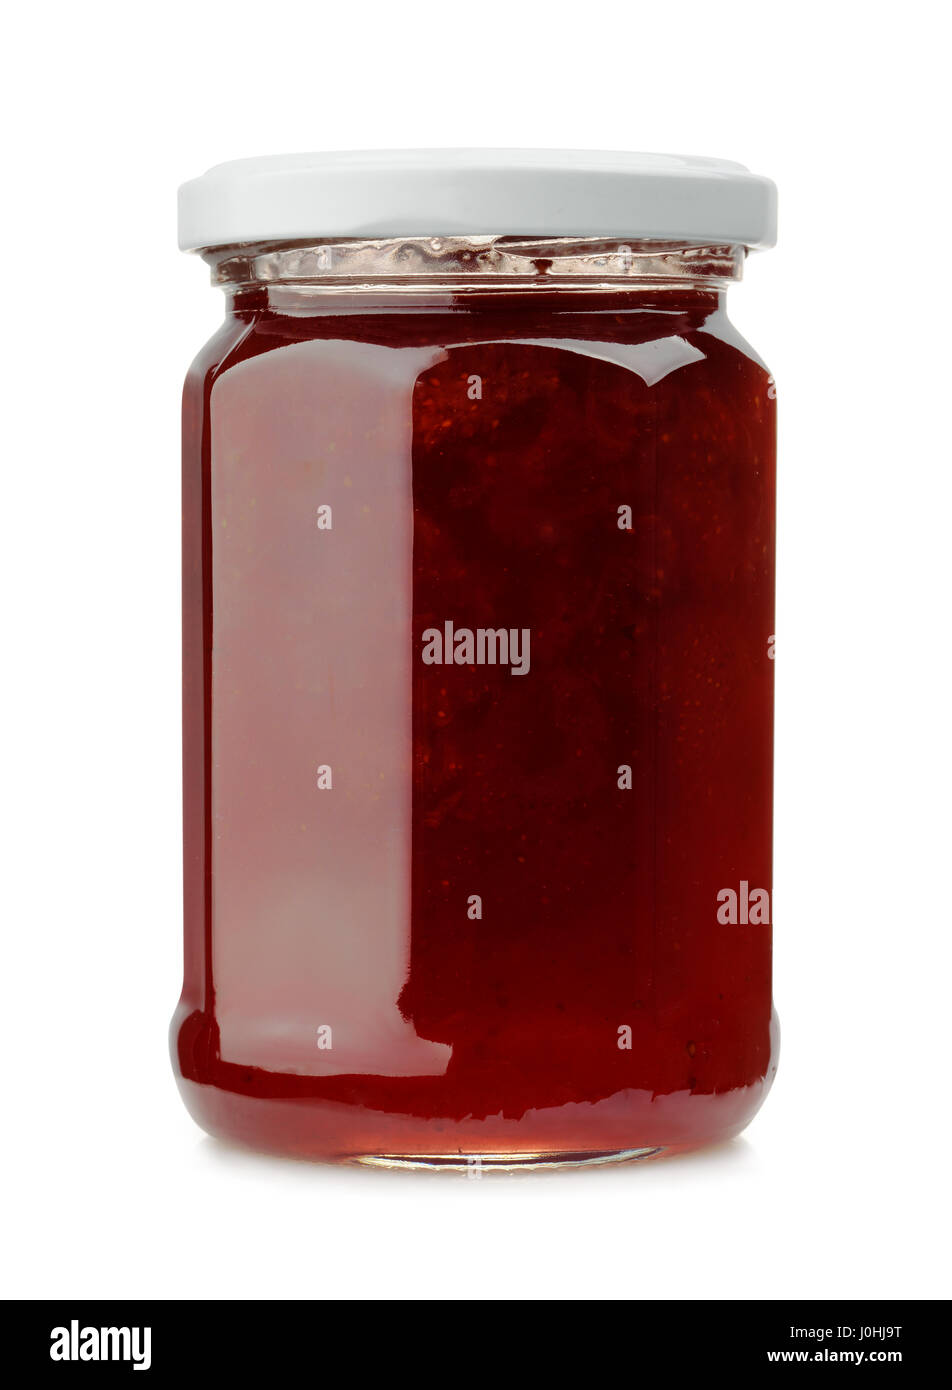 Front view of strawberry jam jar isolated on white - Stock Image